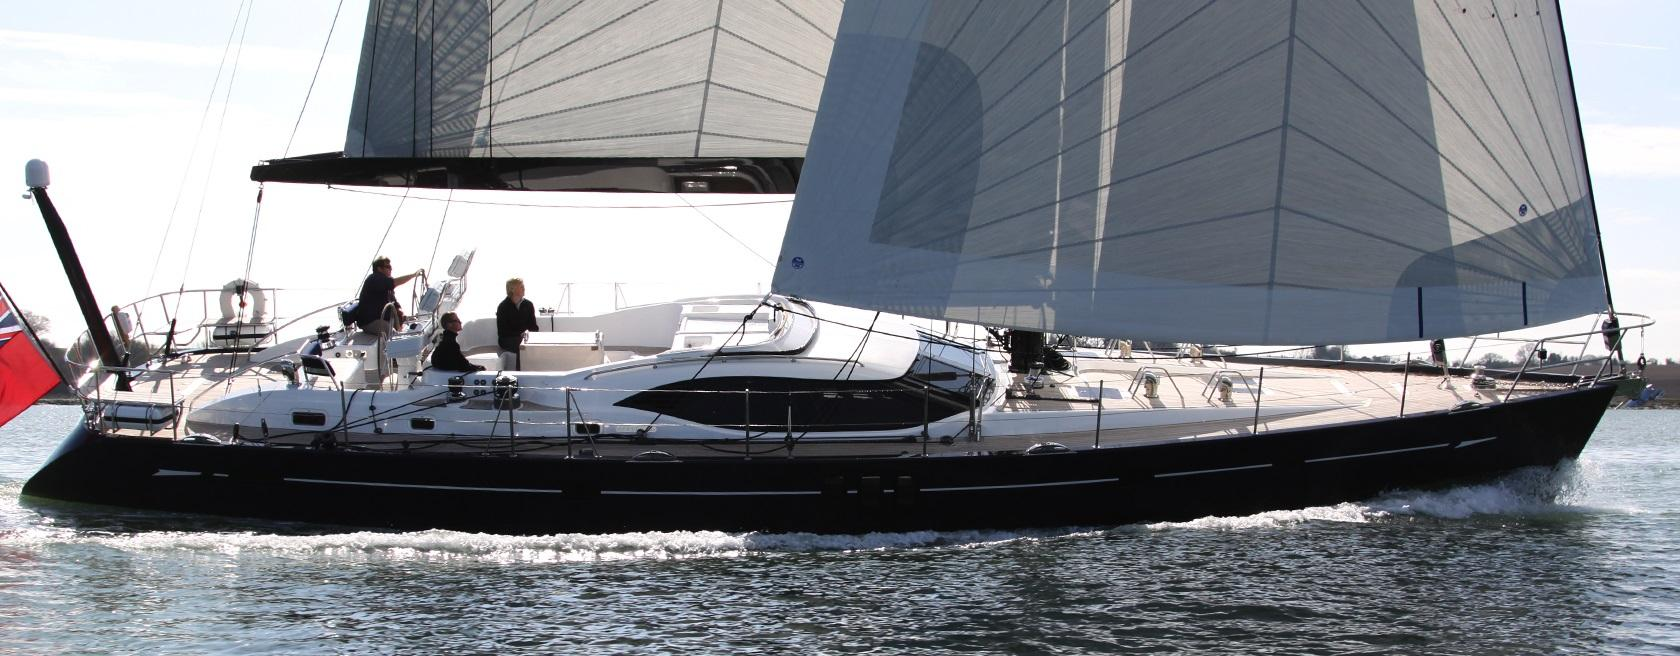 oysteryachts charter 625 blacklion sailing2 1680x1050 2